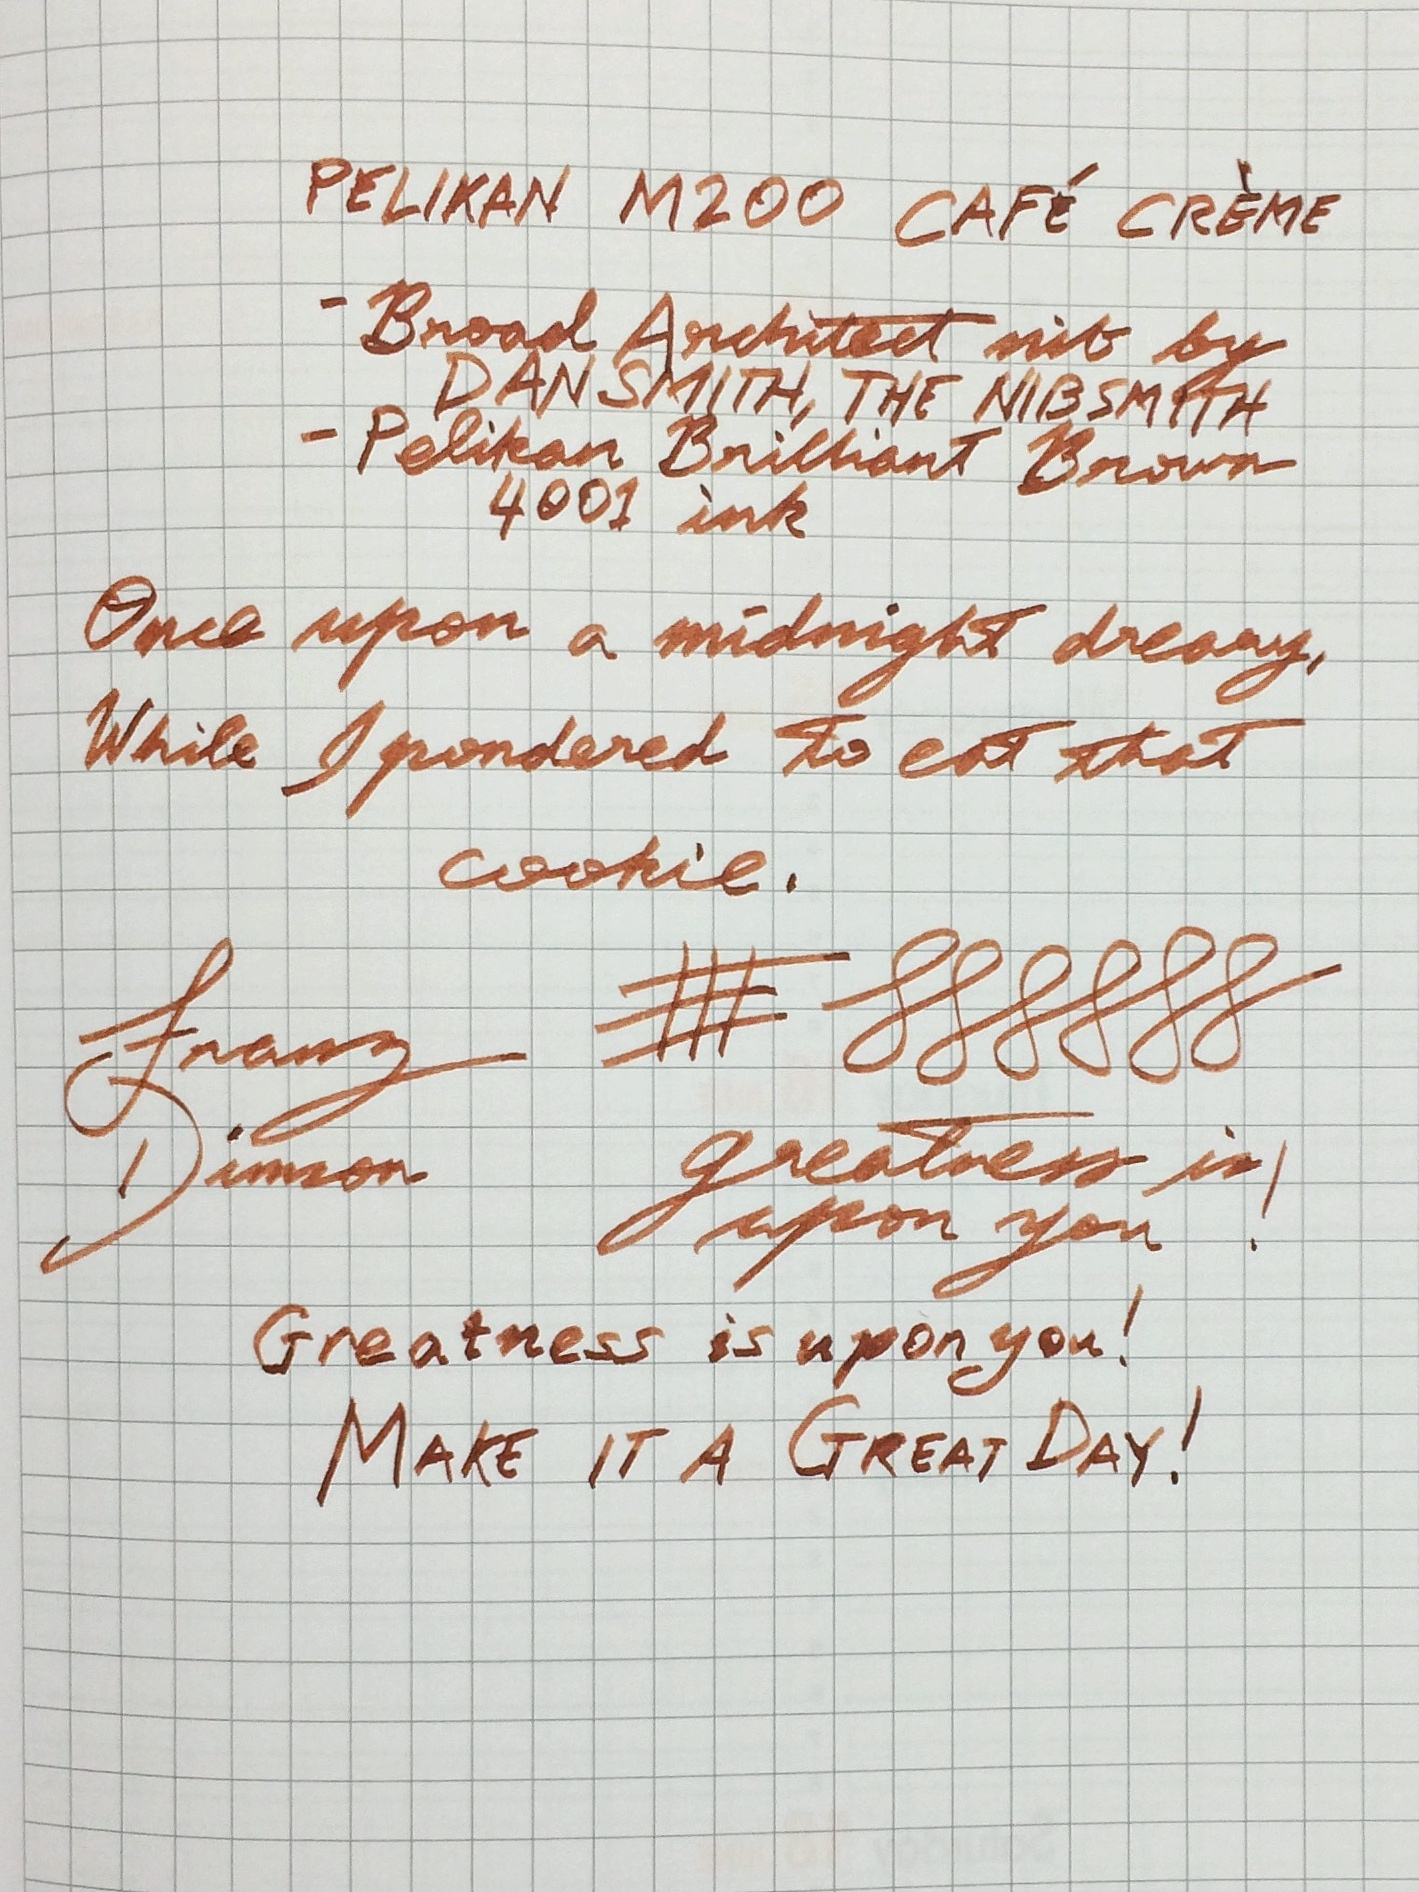 Franz's writing sample of the Pelikan M200 broad architect nib on a Rhodia Weekly Planner